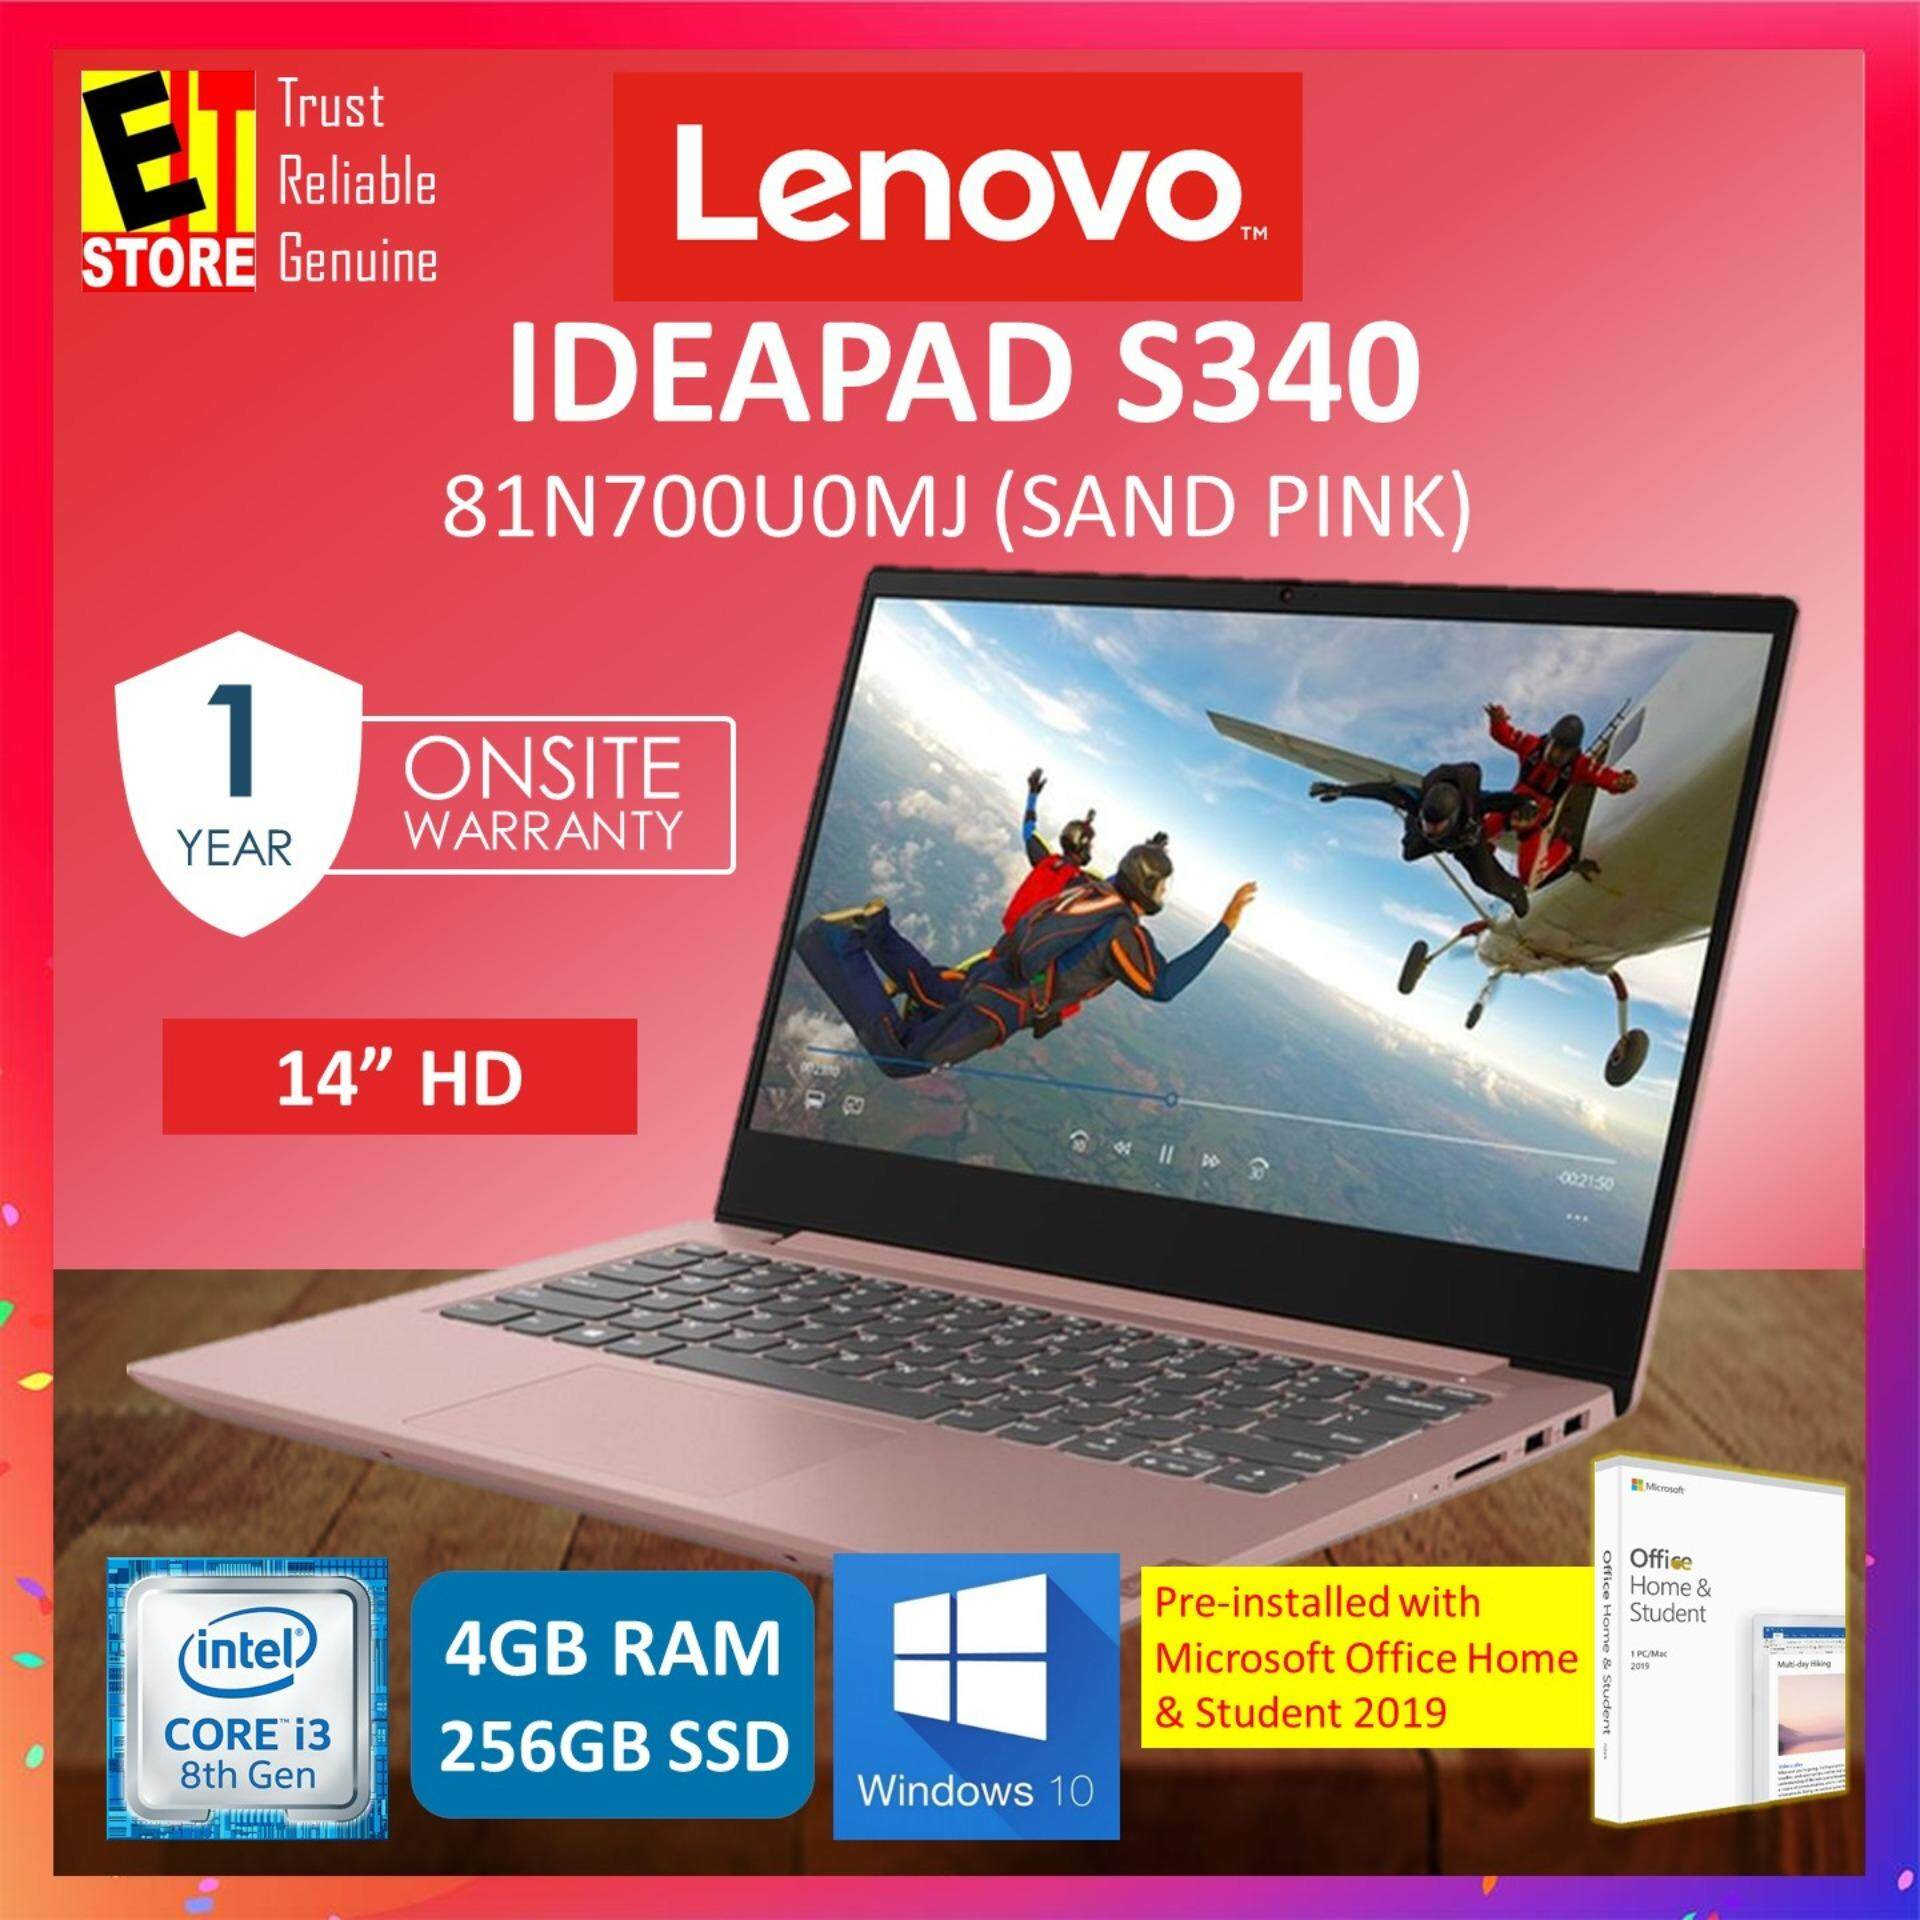 LENOVO IDEAPAD S340 LAPTOP 81N700U0MJ (SAND PINK) (I3-8145U/4GB/256GB SSD/14 HD/W10/OFF HOME & STUDENT 2019/1YR ONSITE) + BAG Malaysia